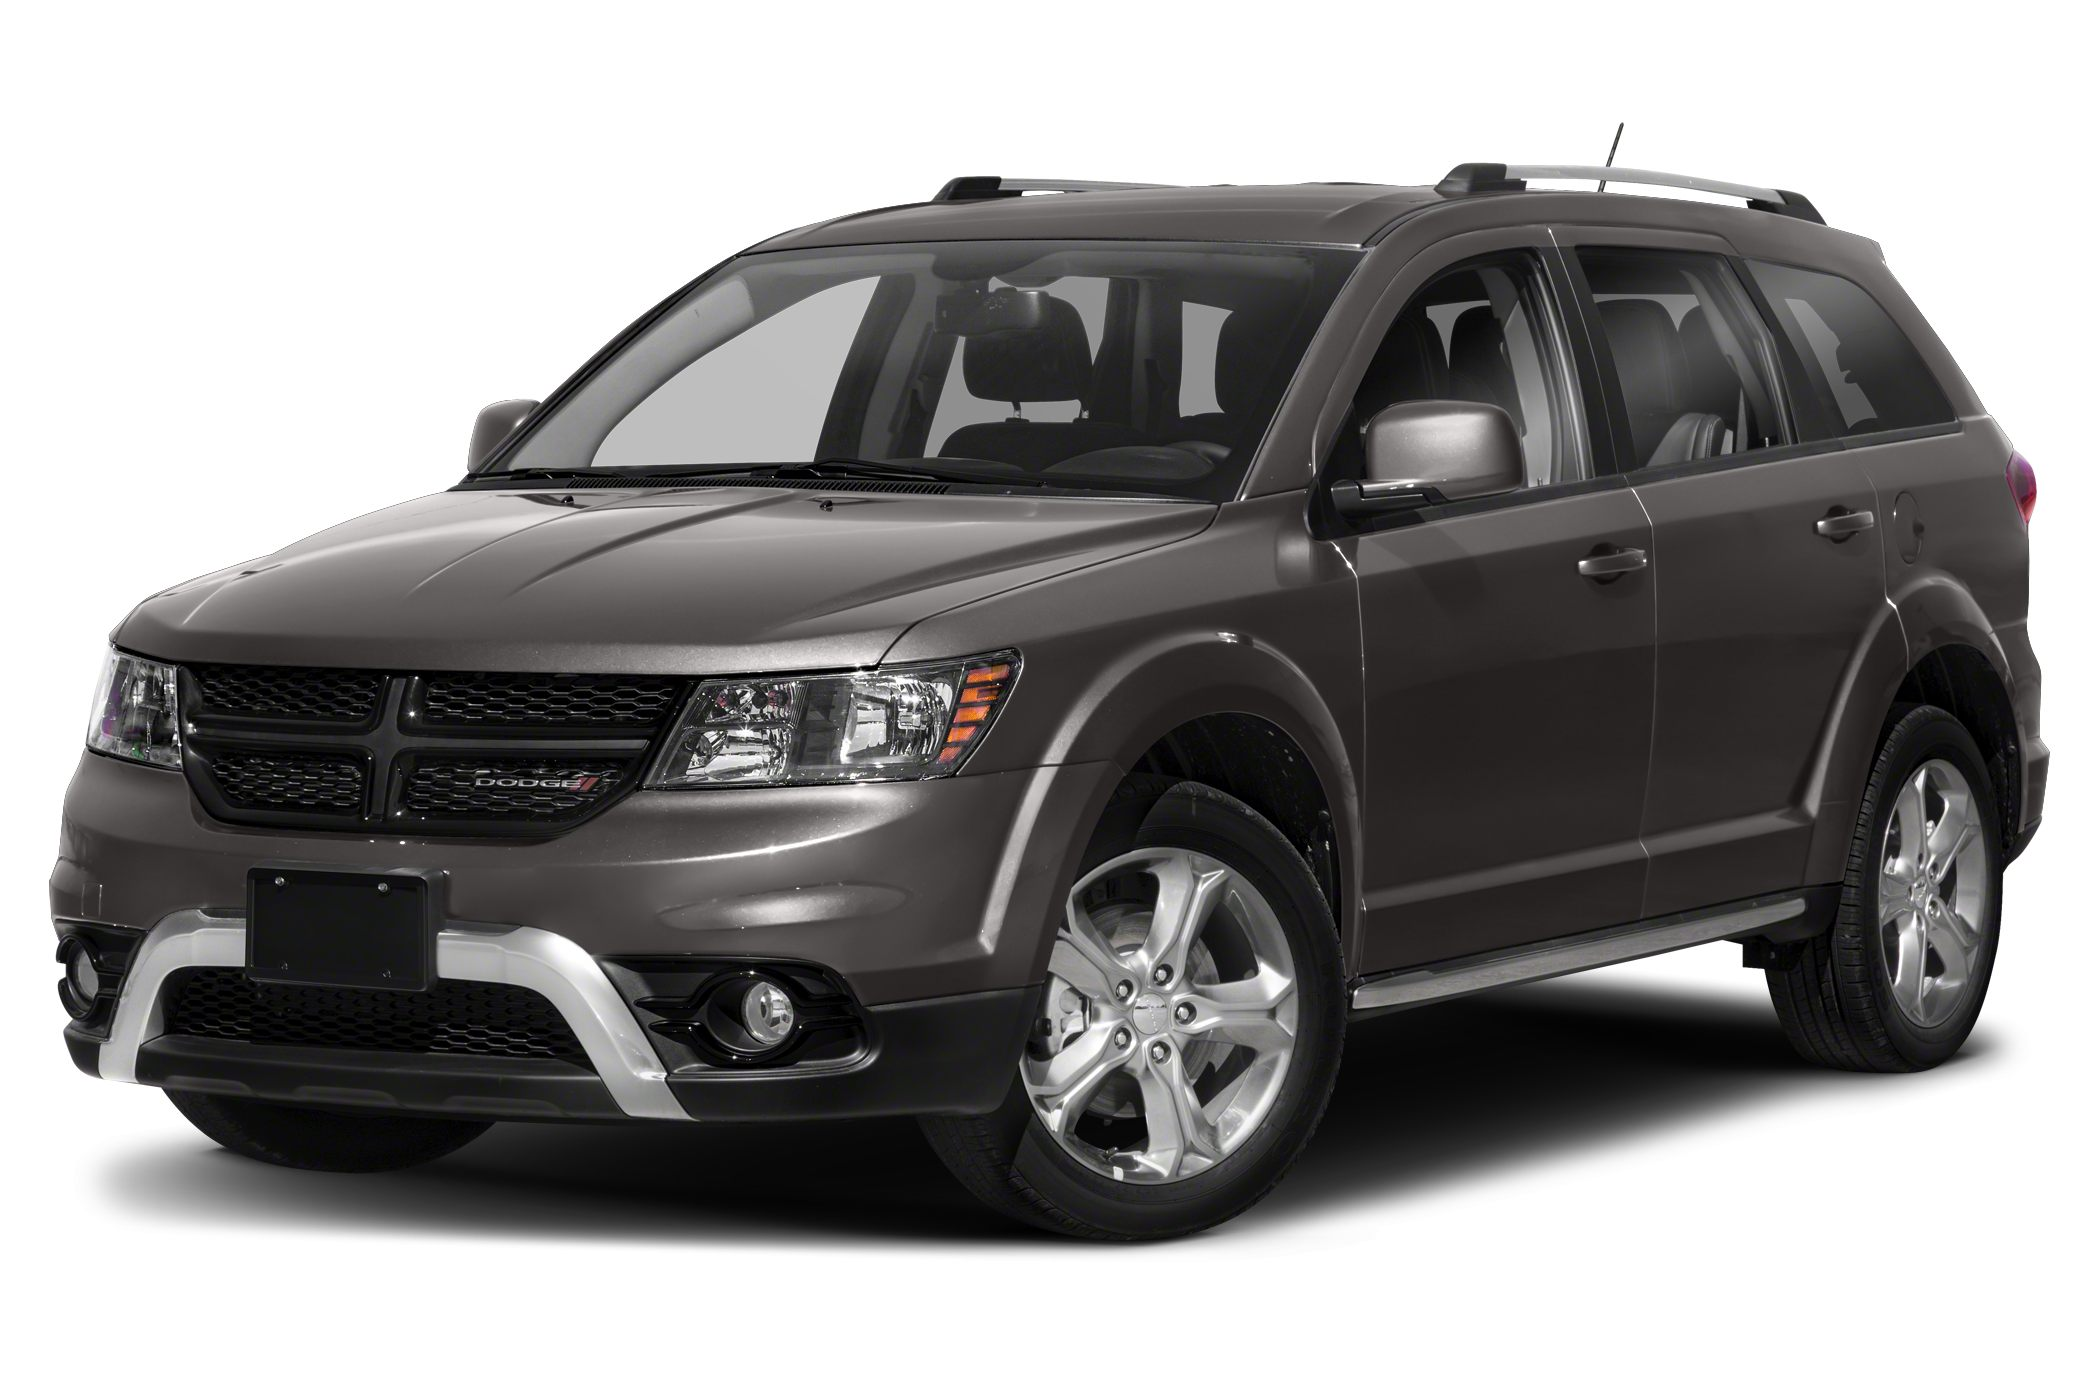 2018 Dodge Journey Crossroad 4dr Front-wheel Drive